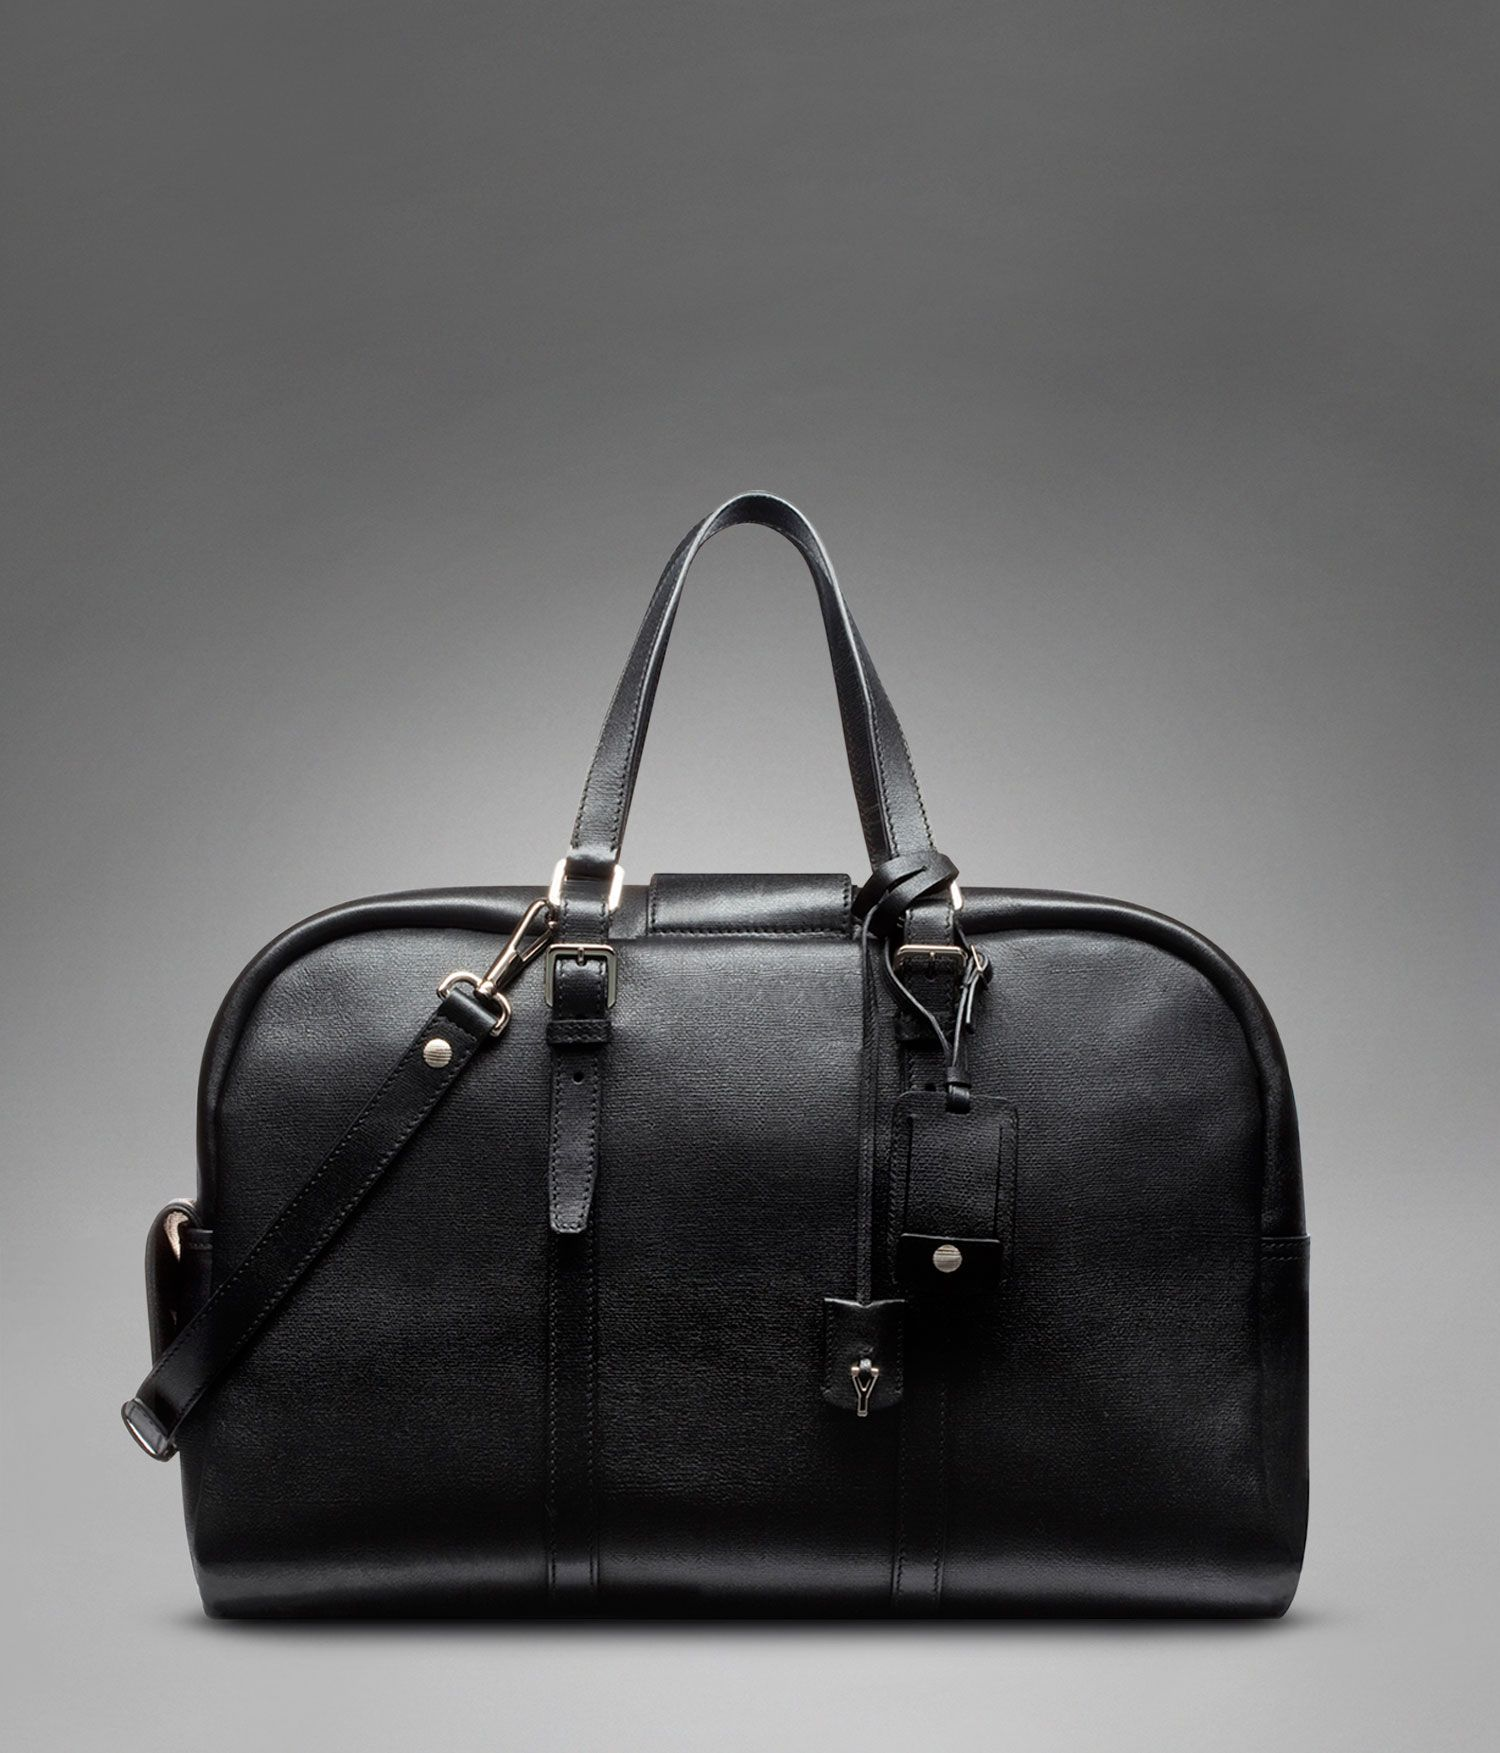 016e212a7b Yves Saint Laurent - MEN's leather travel bag - Ycon Weekend Bag in Black  Textured Leather €1,695.00